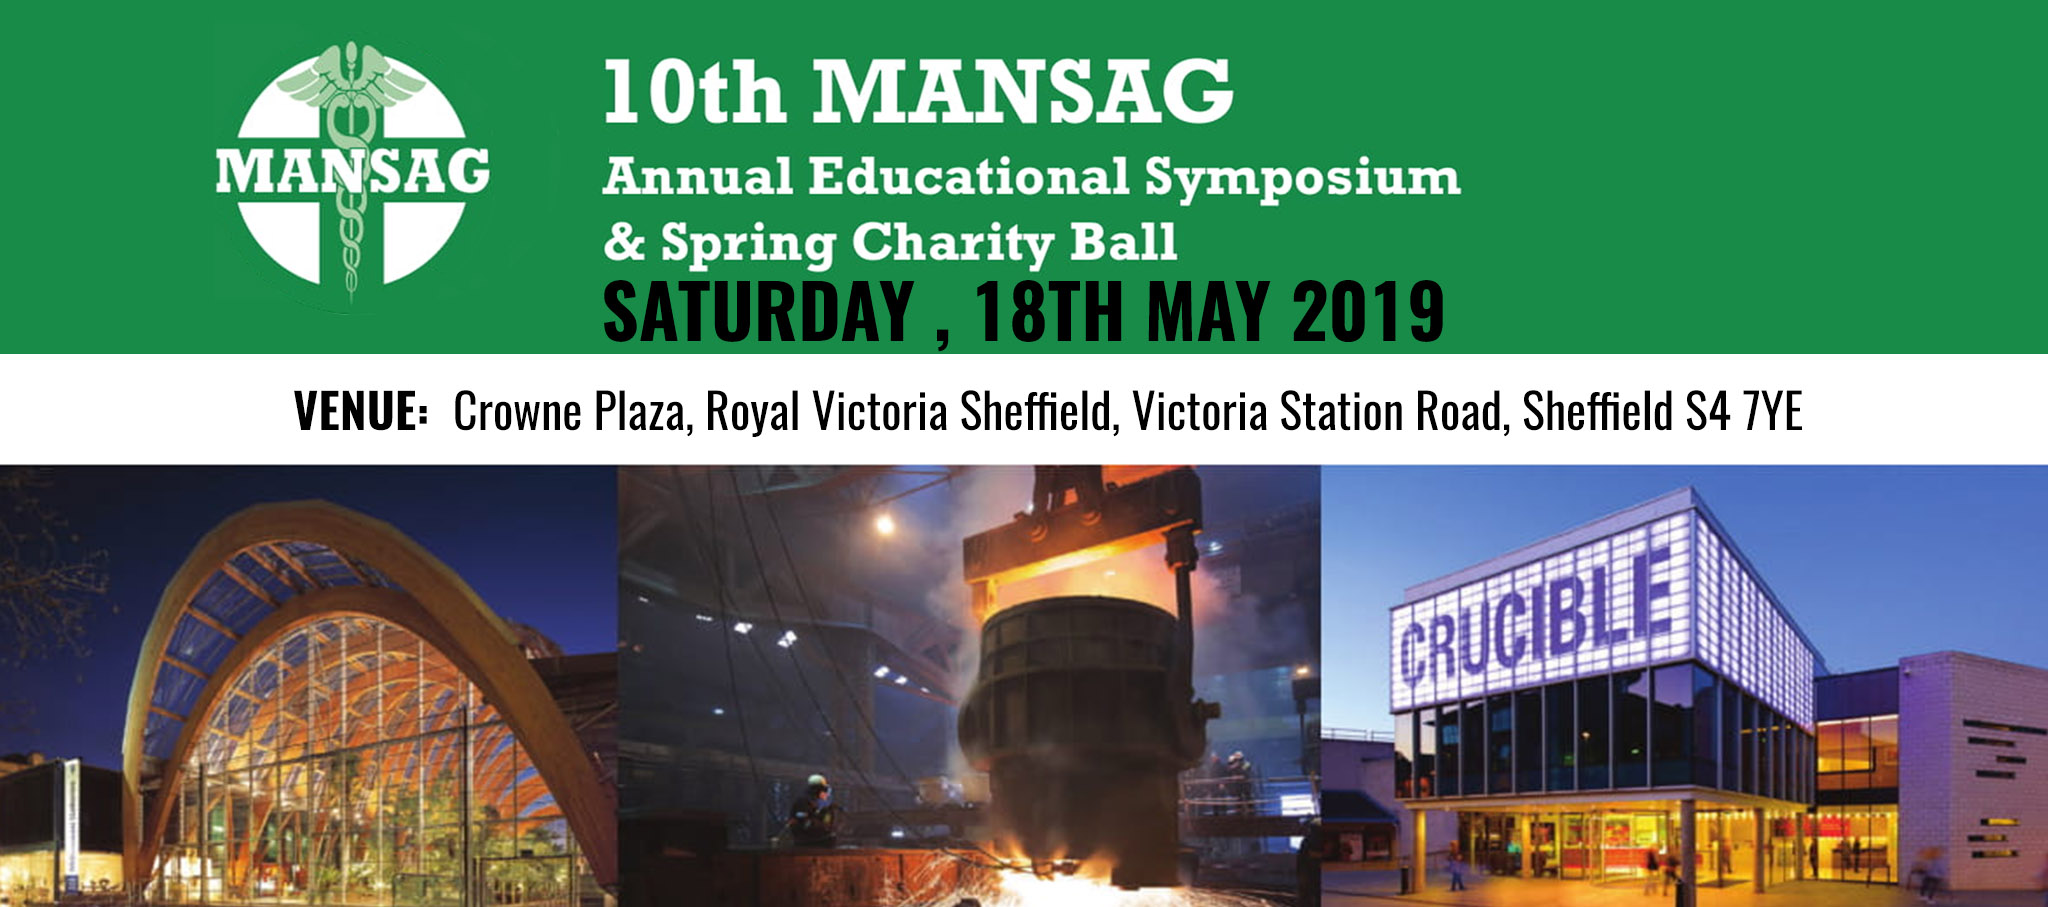 10TH MANSAG ANNUAL EDUCATIONAL SYMPOSIUM & SPRING CHARITY BALL 2019 – SHEFFIELD